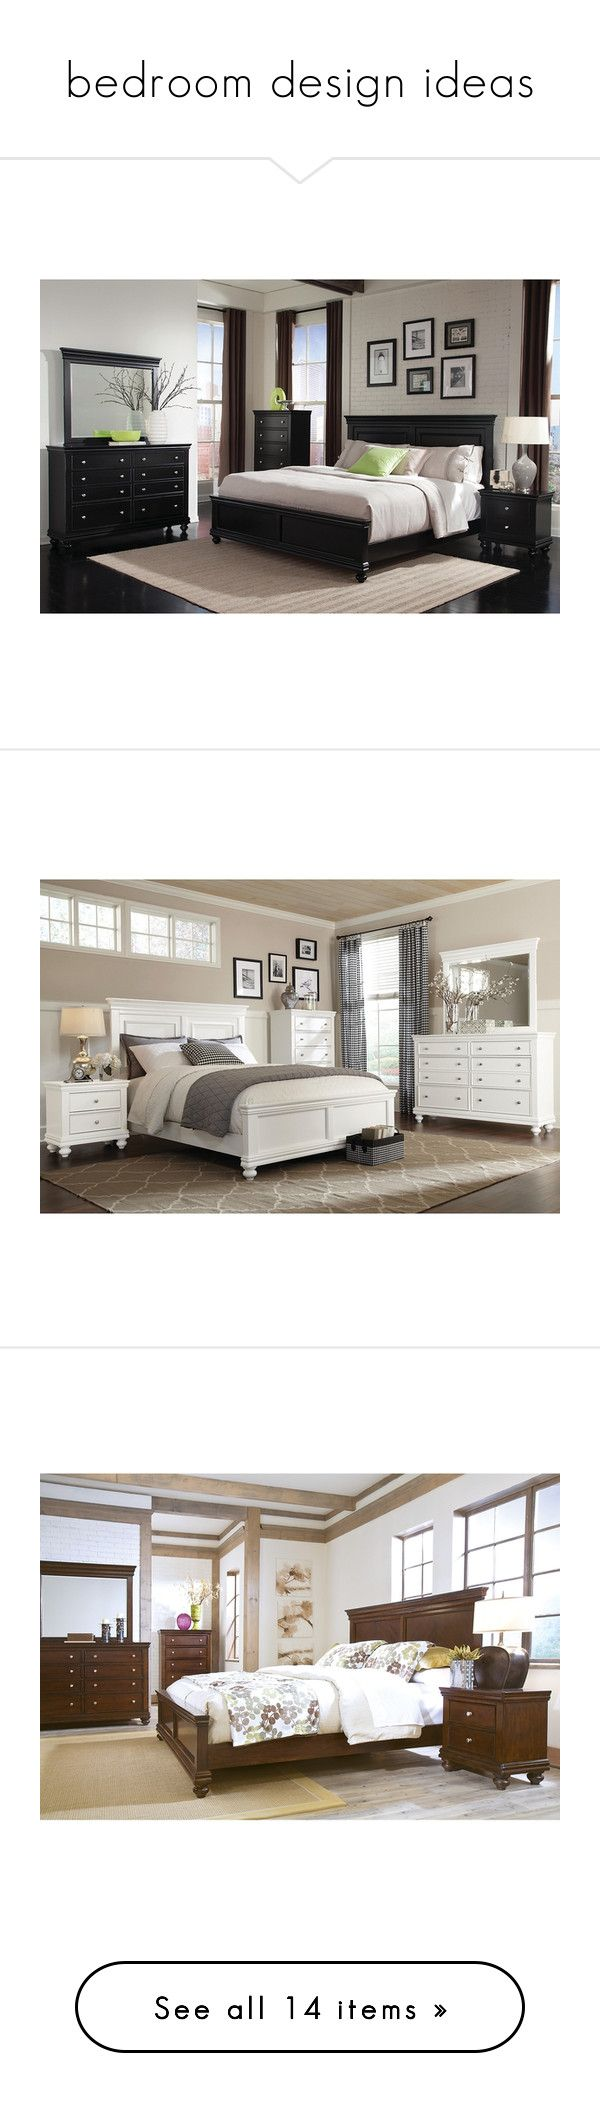 """""""bedroom design ideas"""" by caitlin-rosling ❤ liked on Polyvore featuring home, furniture, onyx furniture, black bedroom sets, black furniture, 5 pc bedroom set, 5 piece bedroom set, white furniture, 5pc bedroom set and white bedroom set"""